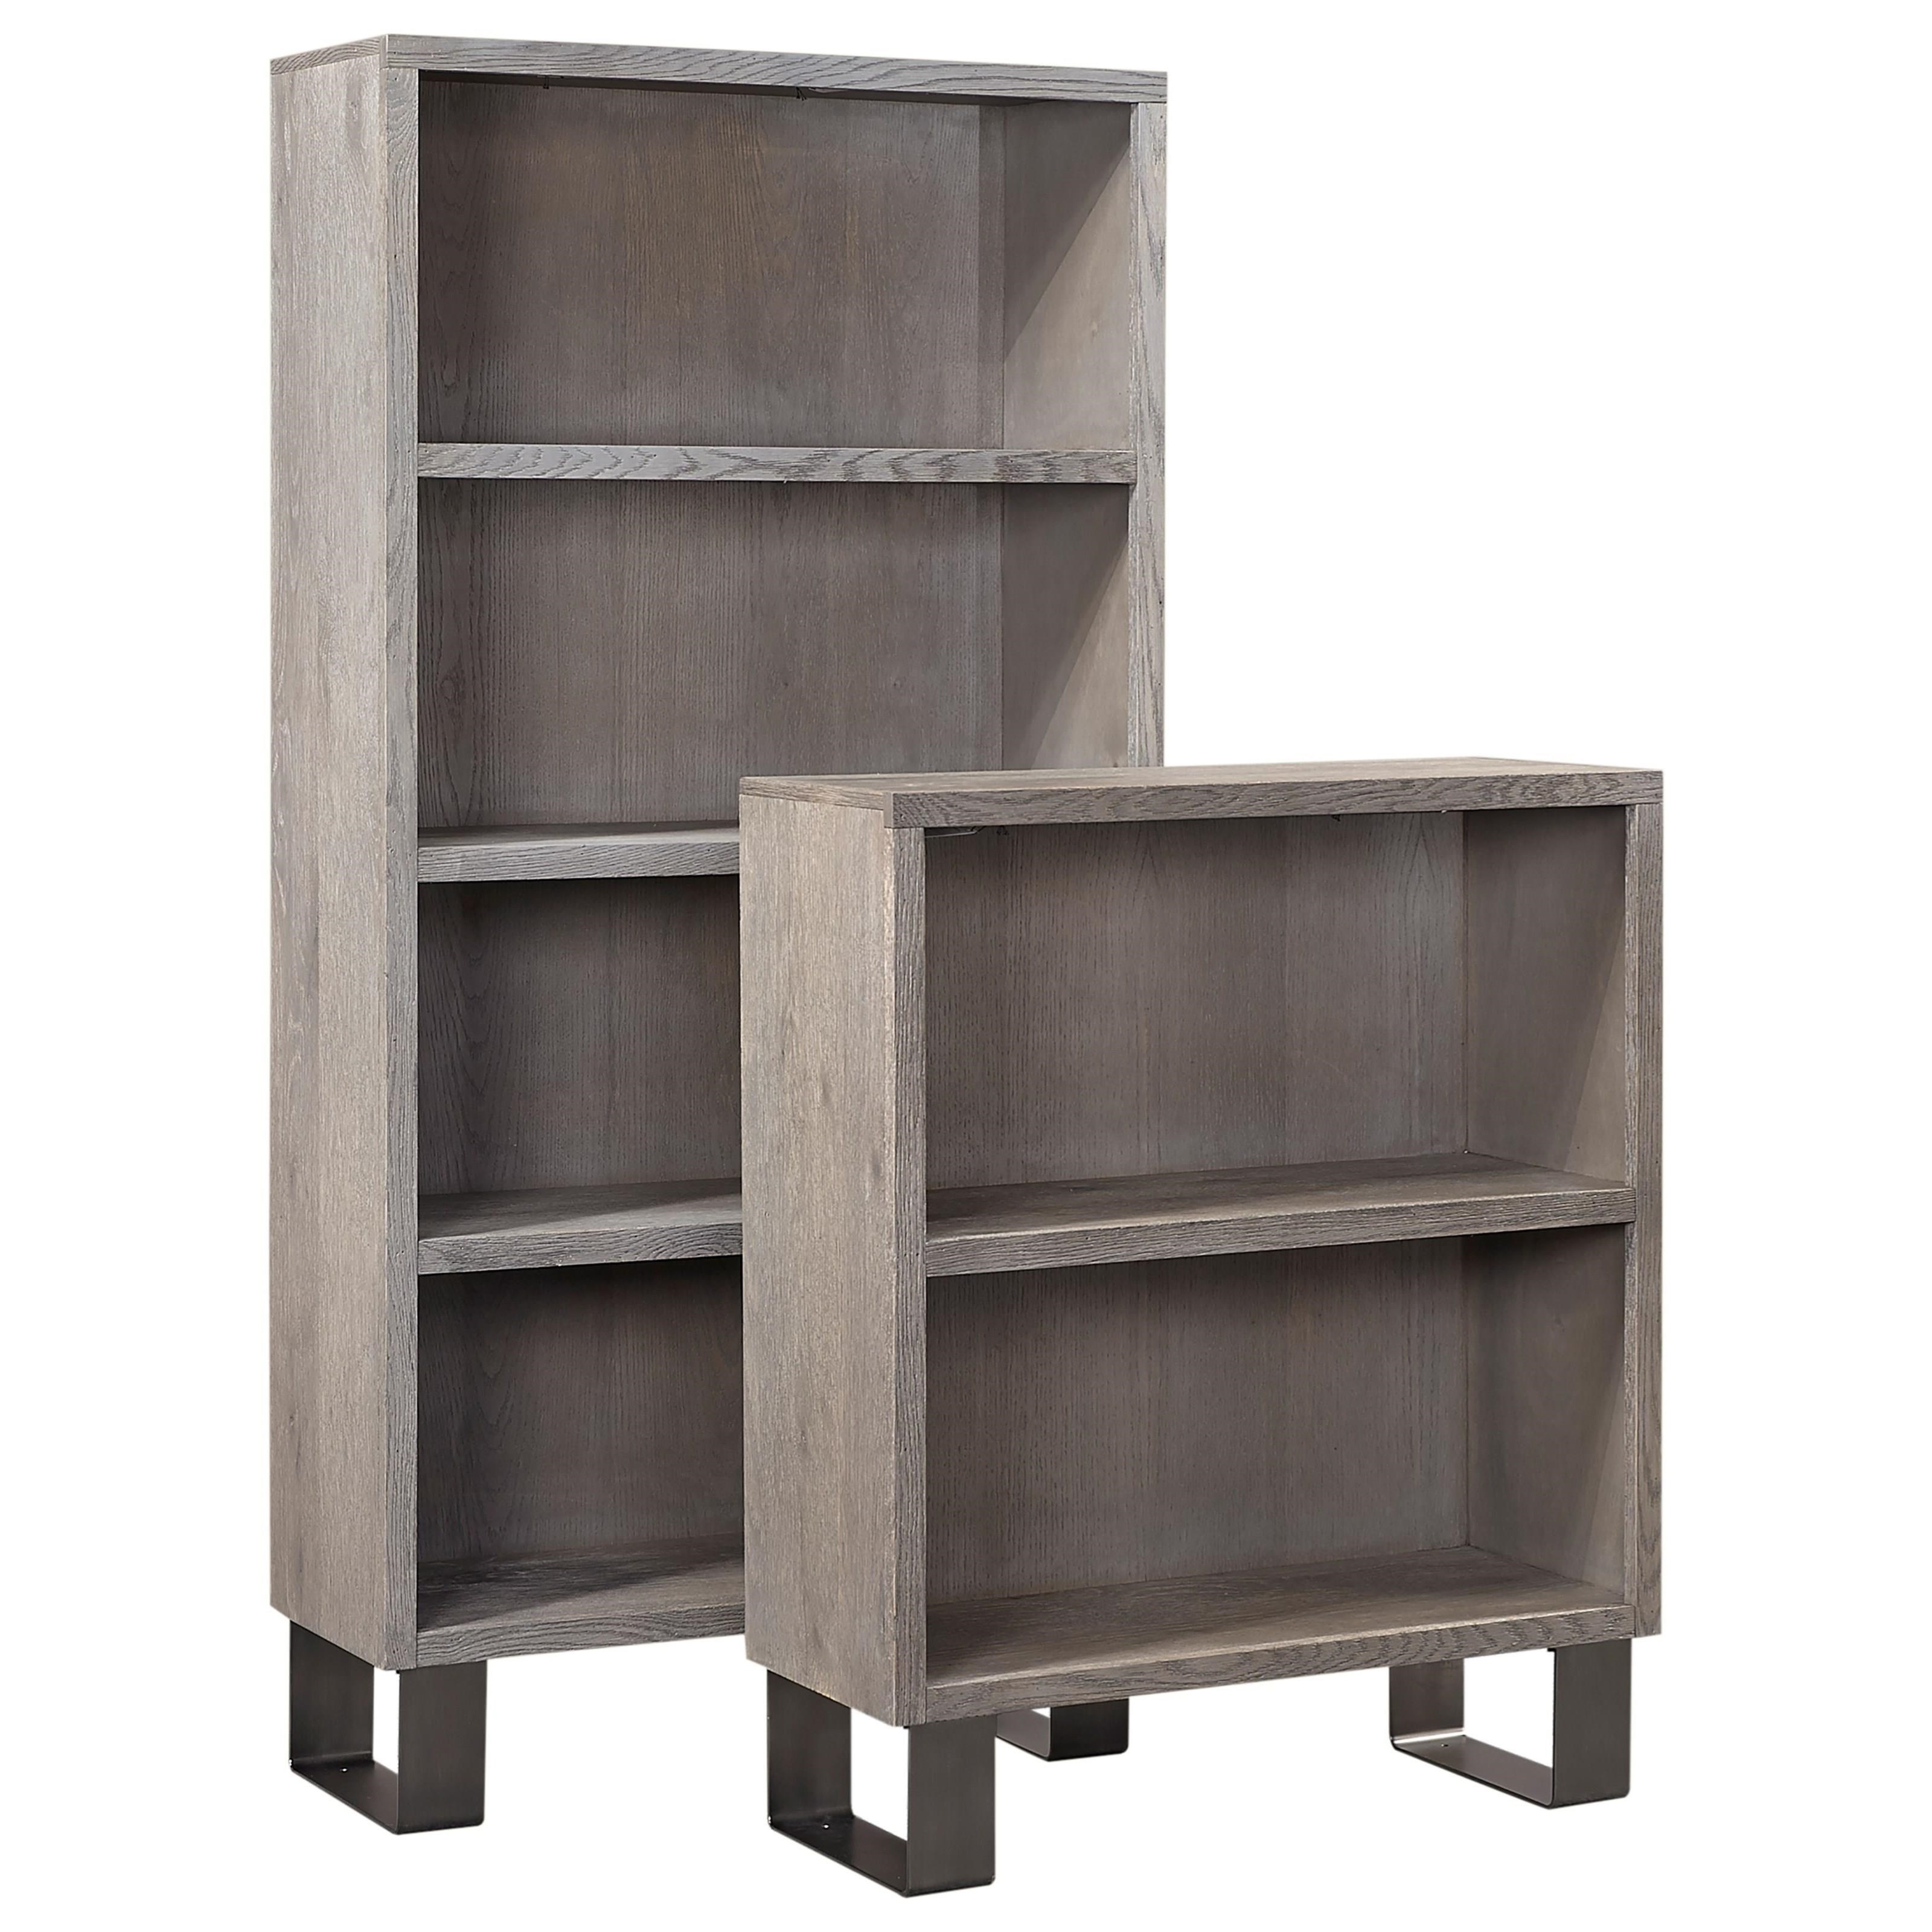 Cityscape Contemporary 53 Tall Bookcase With Three Shelves By Aspenhome Clackamas Store Only